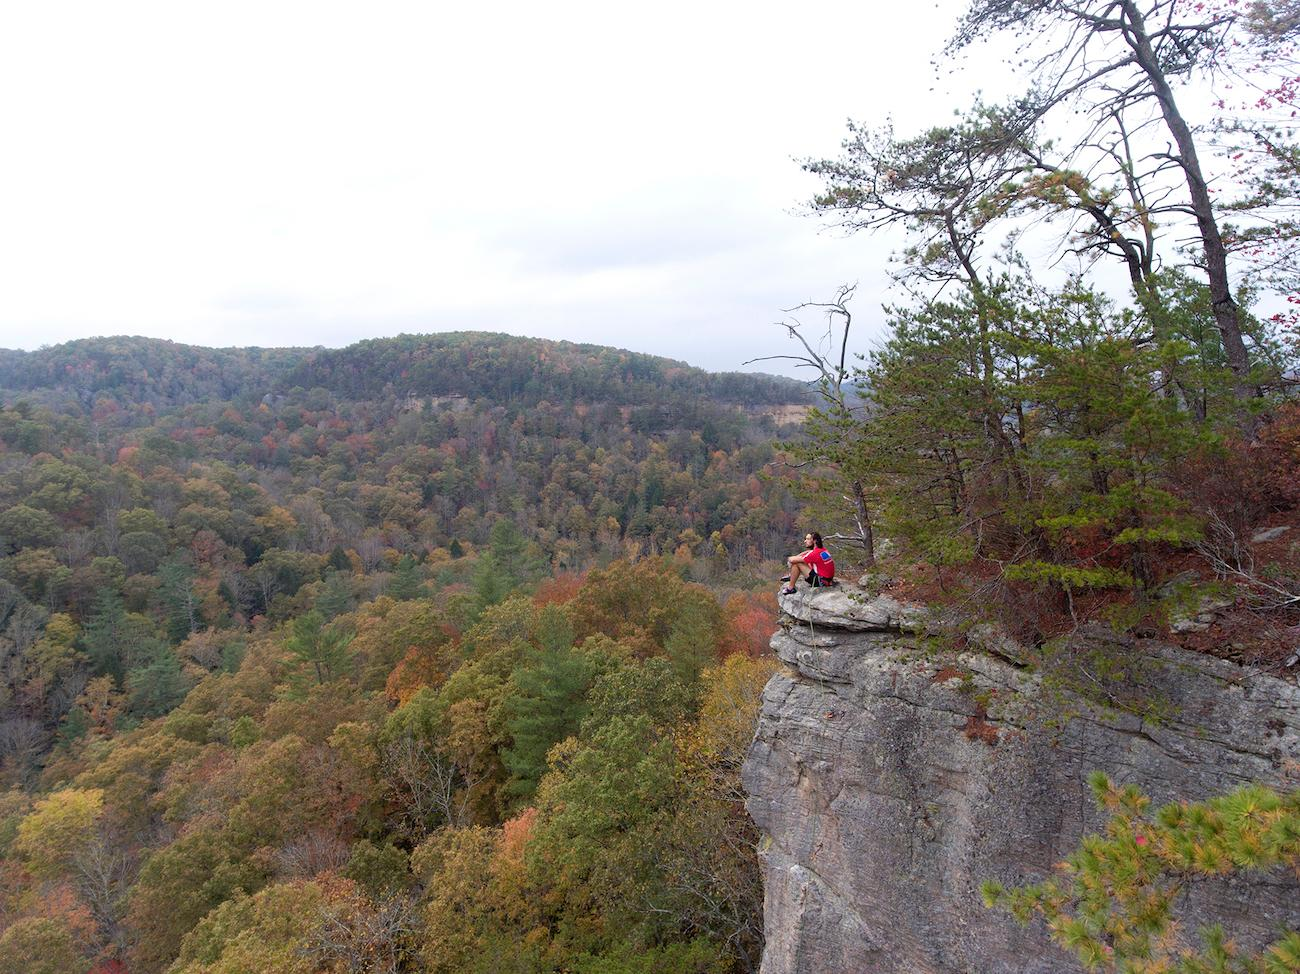 <p>PLACE: Red River Gorge in Kentucky / DISTANCE: 133 miles southeast of Cincinnati, a two-hour drive / Kentucky's Red River Gorge boasts spectacular rock features such as sandstone arches and towering cliffs, hiking trails, wildlife viewing, and more. Fall's cooling temperatures and brilliant displays of color make it an excellent place to hike or drive. / Image courtesy of the Kentucky Department of Tourism // Published: 10.19.19</p>